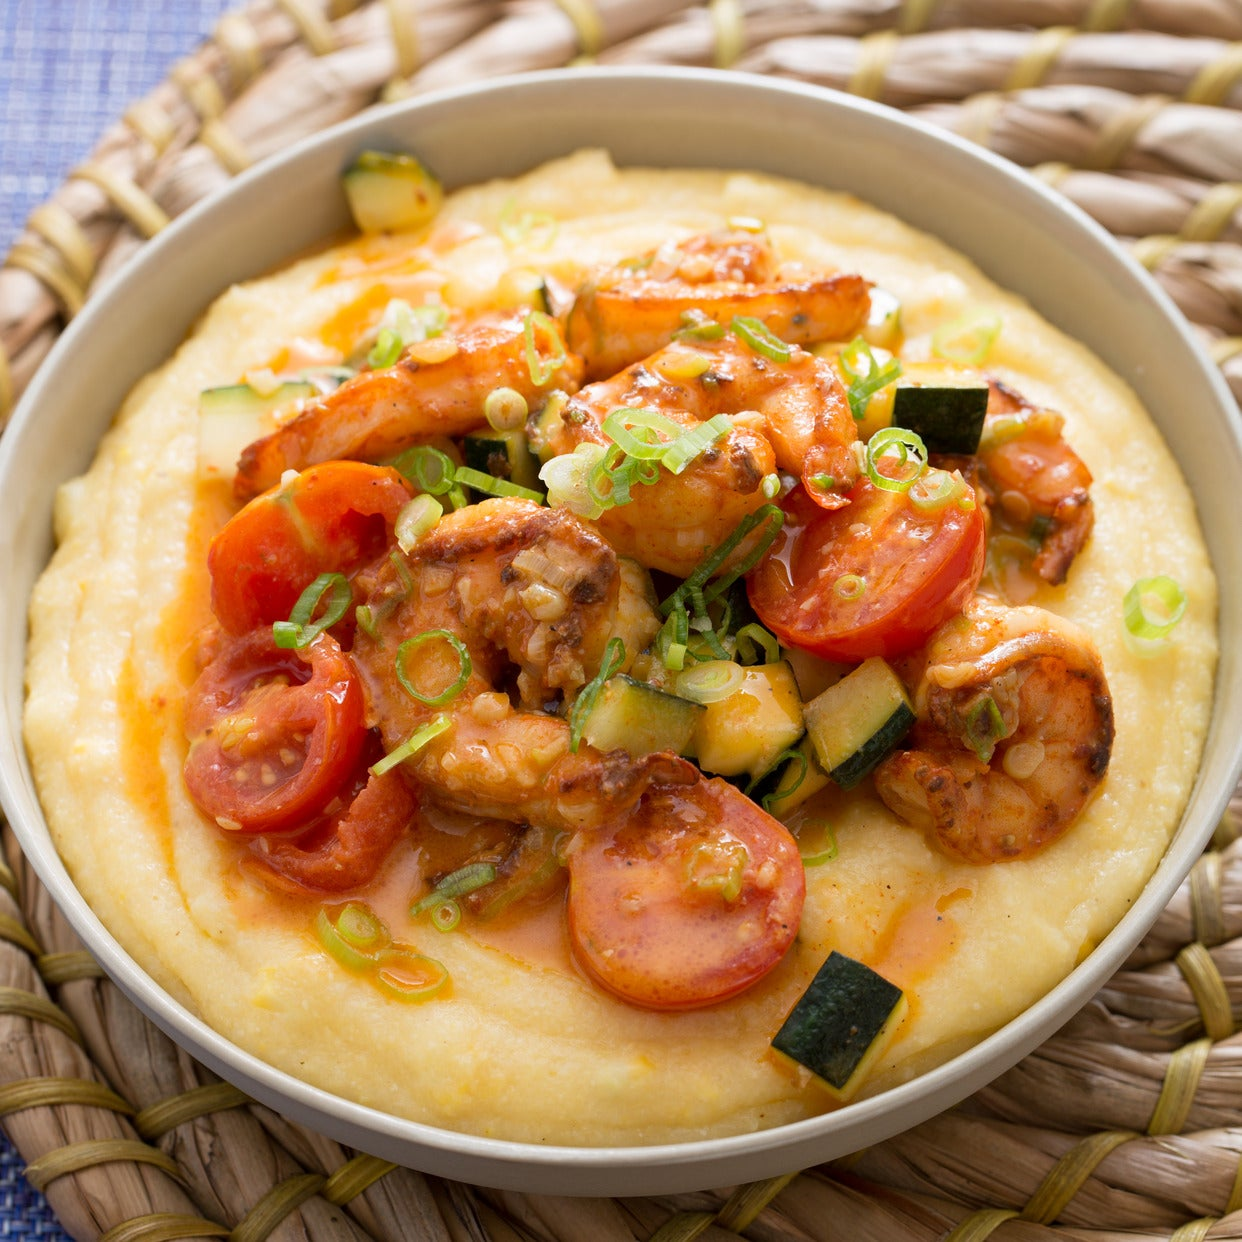 Southern-Style Shrimp & Grits with Corn, Zucchini & Cherry Tomatoes